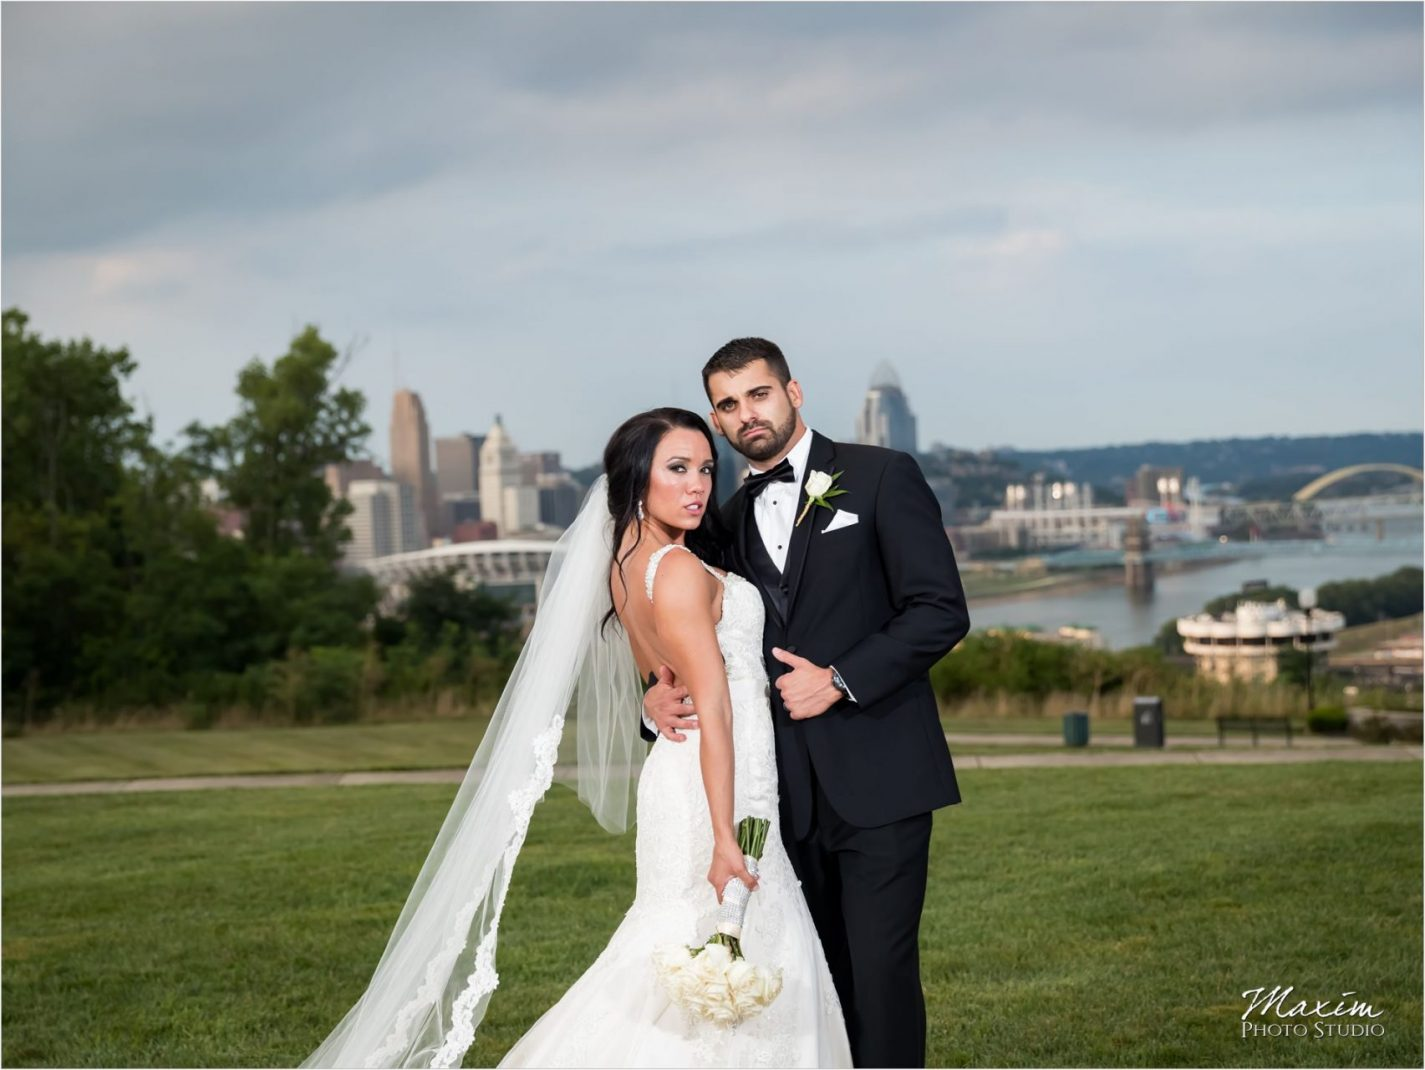 Drees Pavilion Covington Kentucky Wedding Reception Portraits